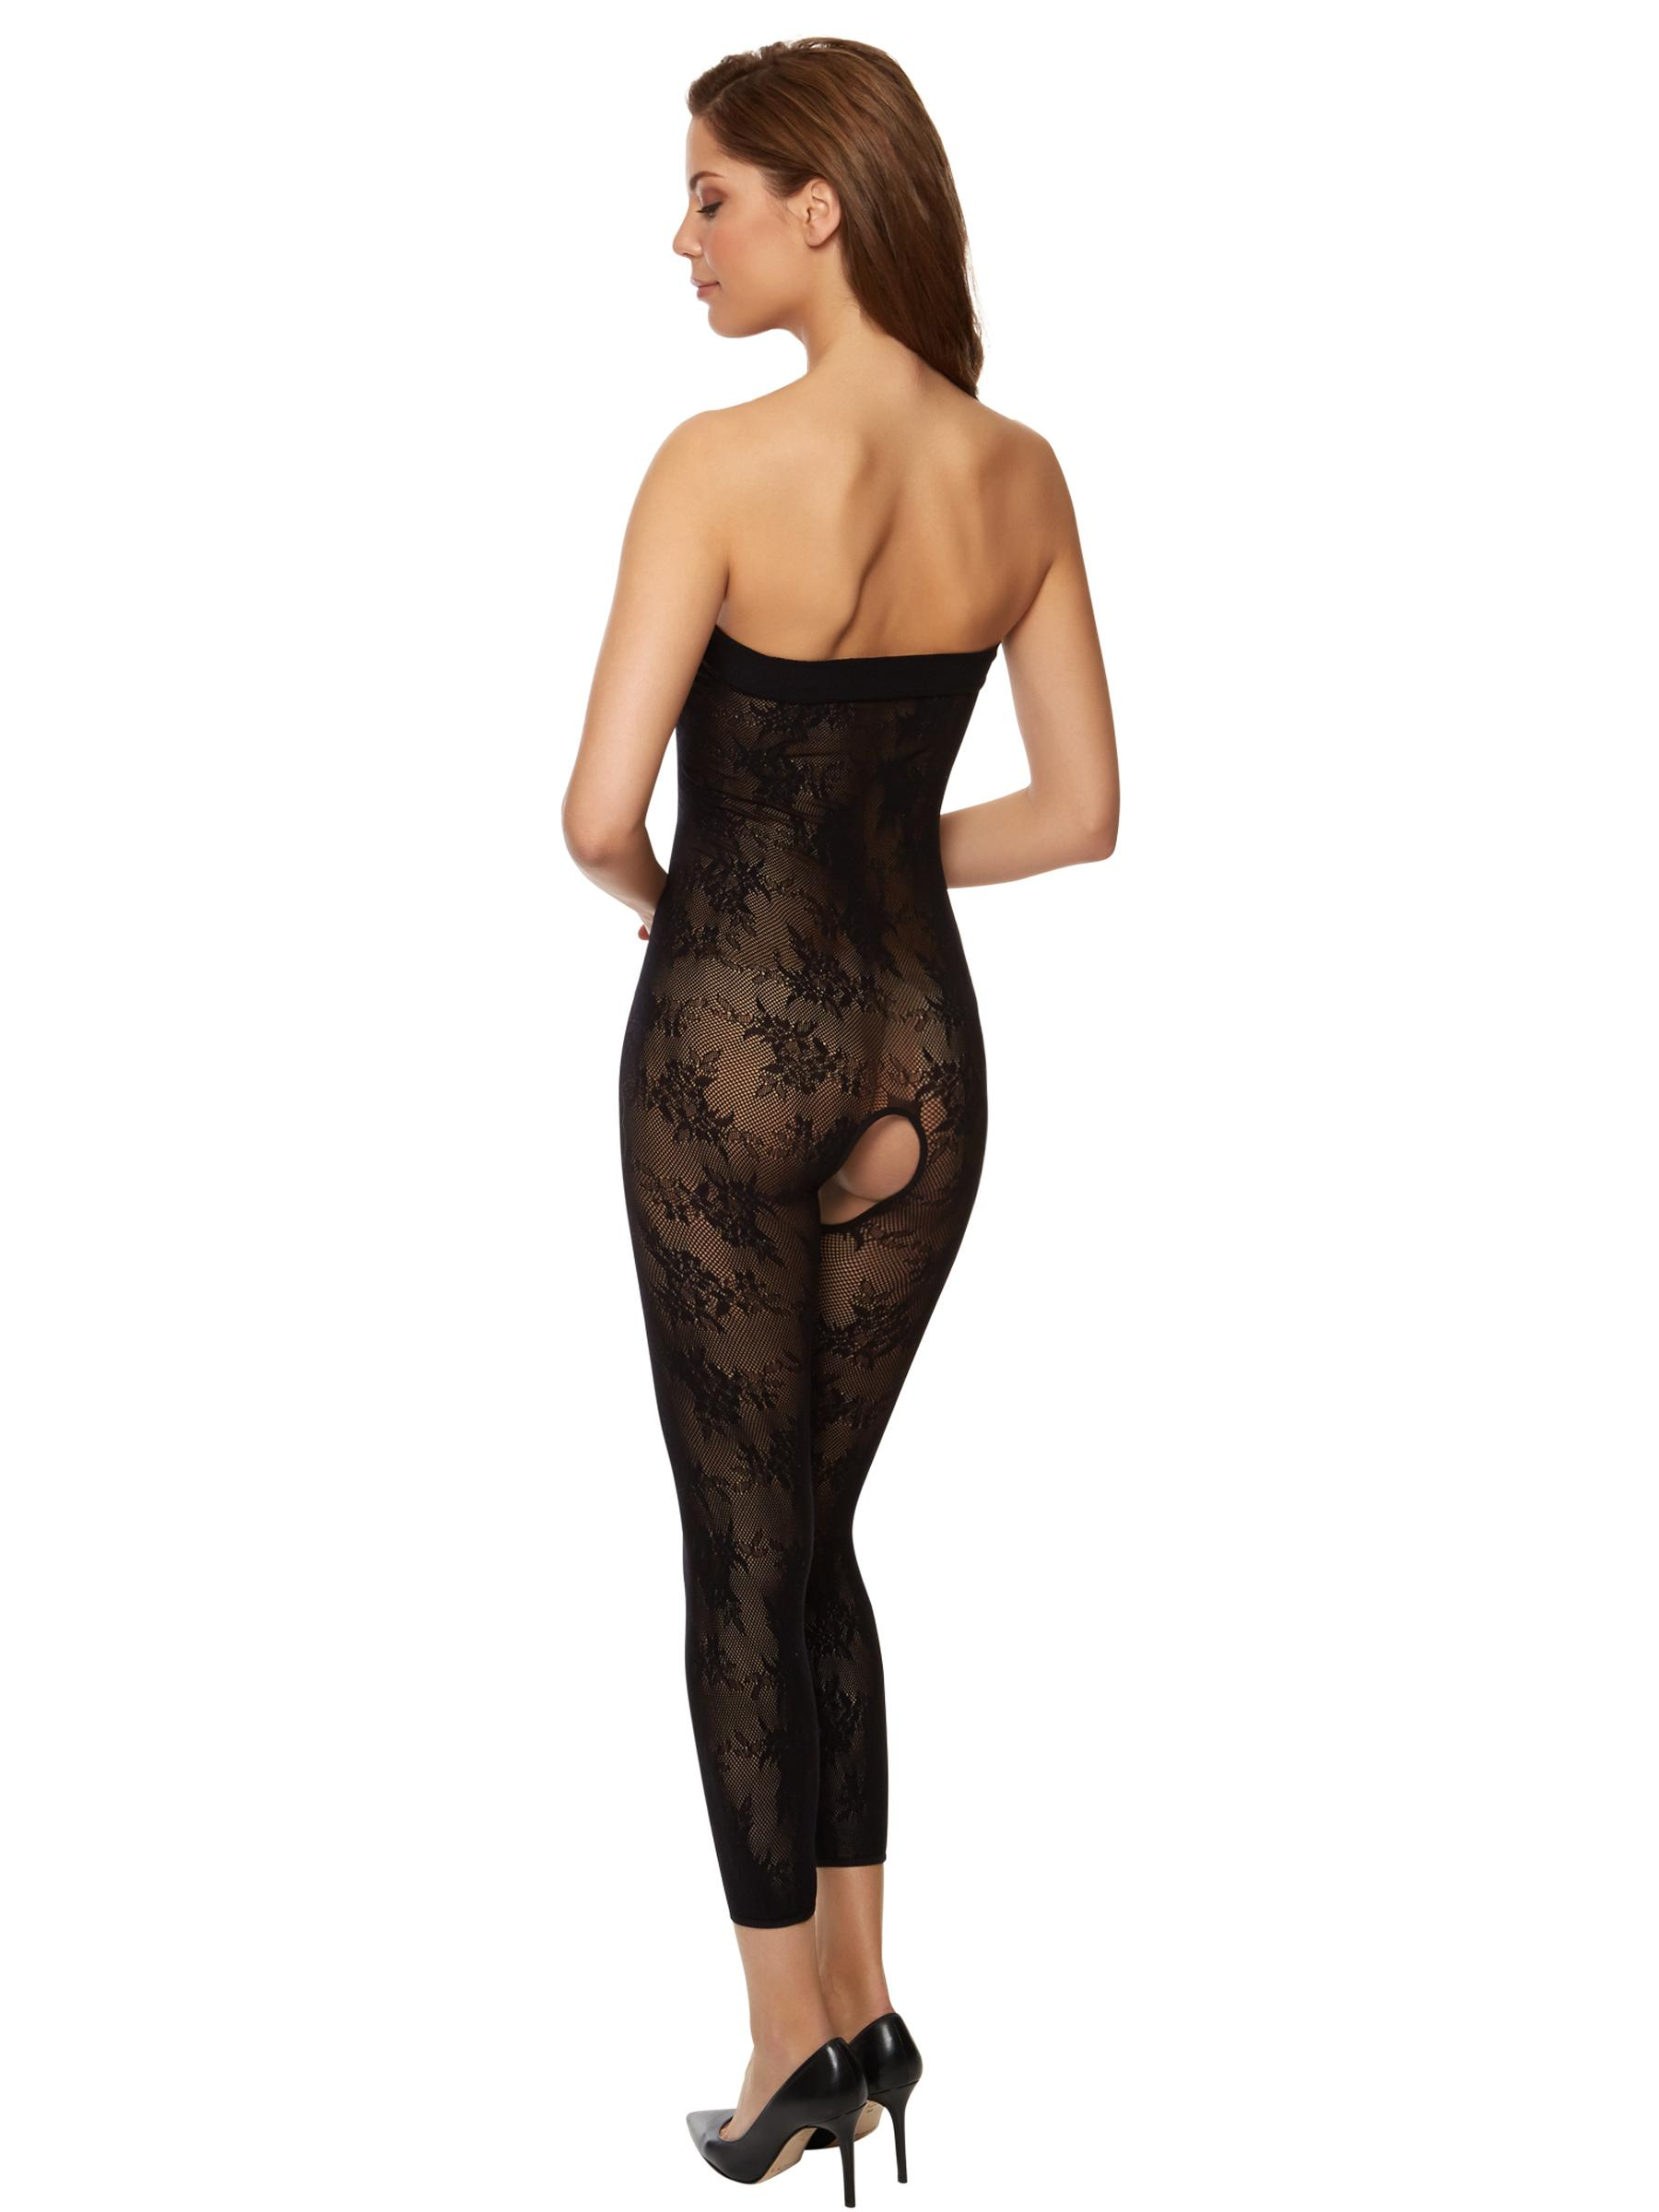 Ann summers multiway dress instructions